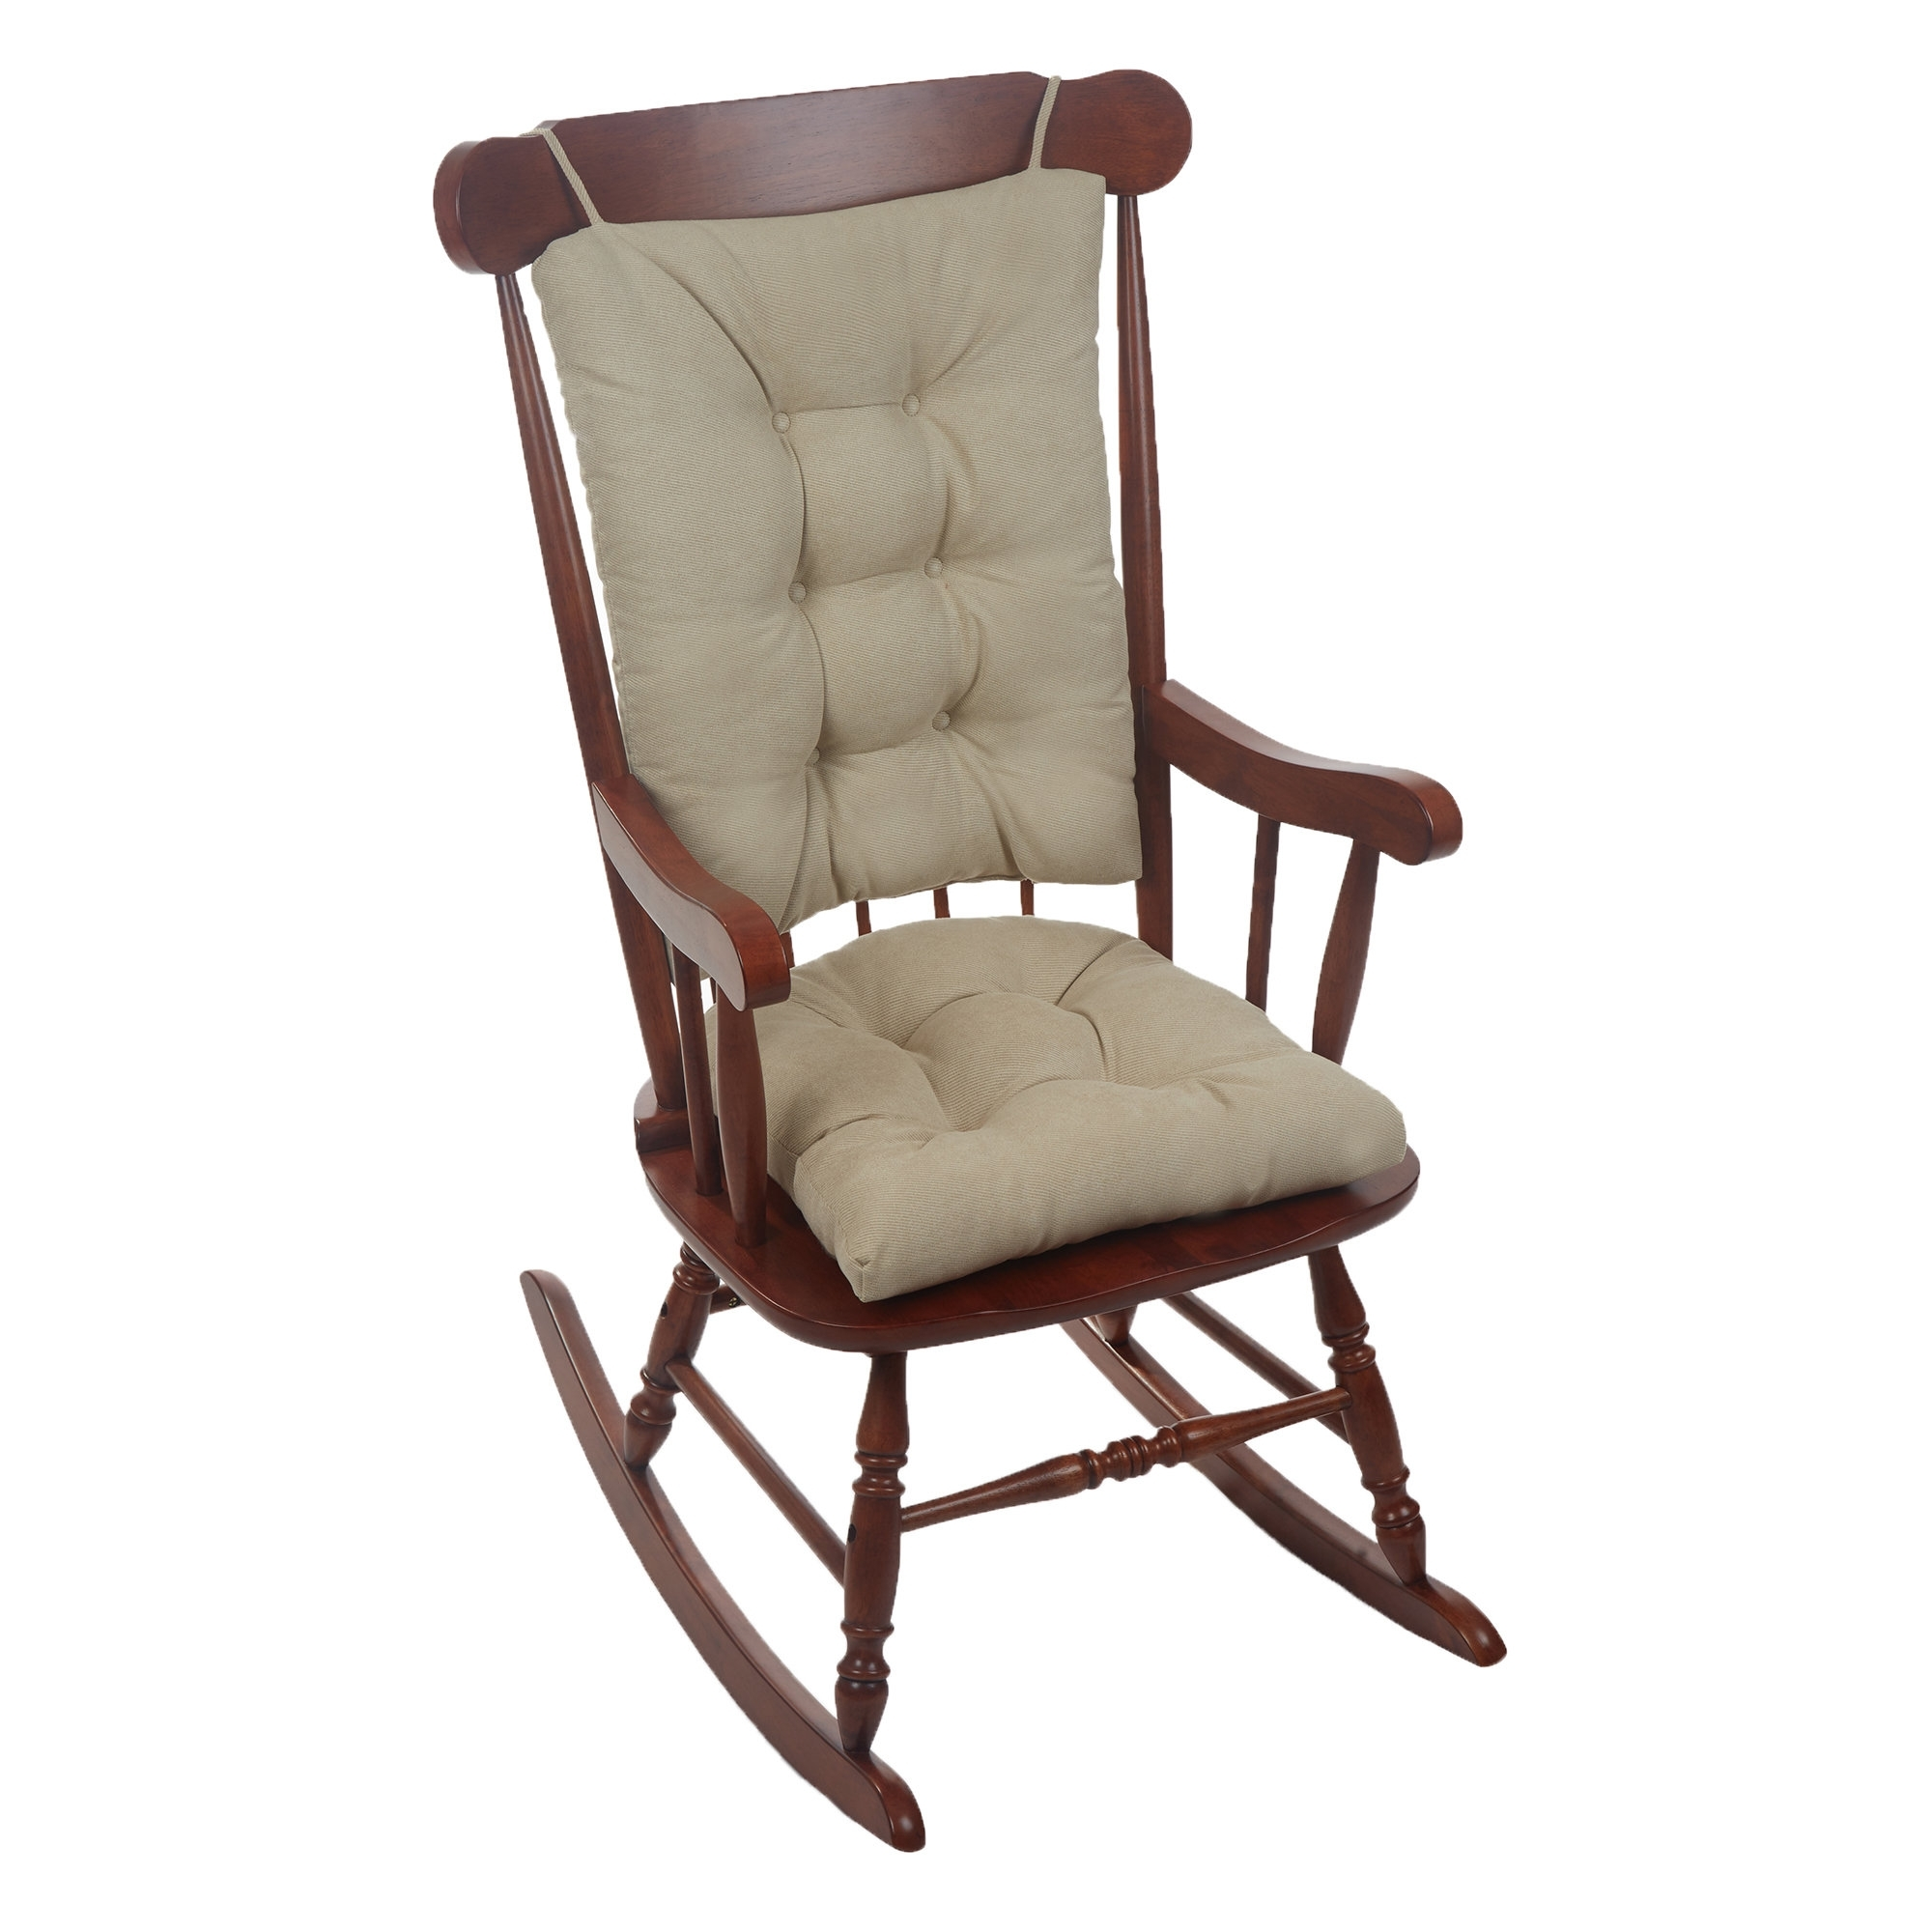 Wayfair Basics™ Wayfair Basics Rocking Chair Cushion & Reviews | Wayfair Within Rocking Chairs At Wayfair (#9 of 15)